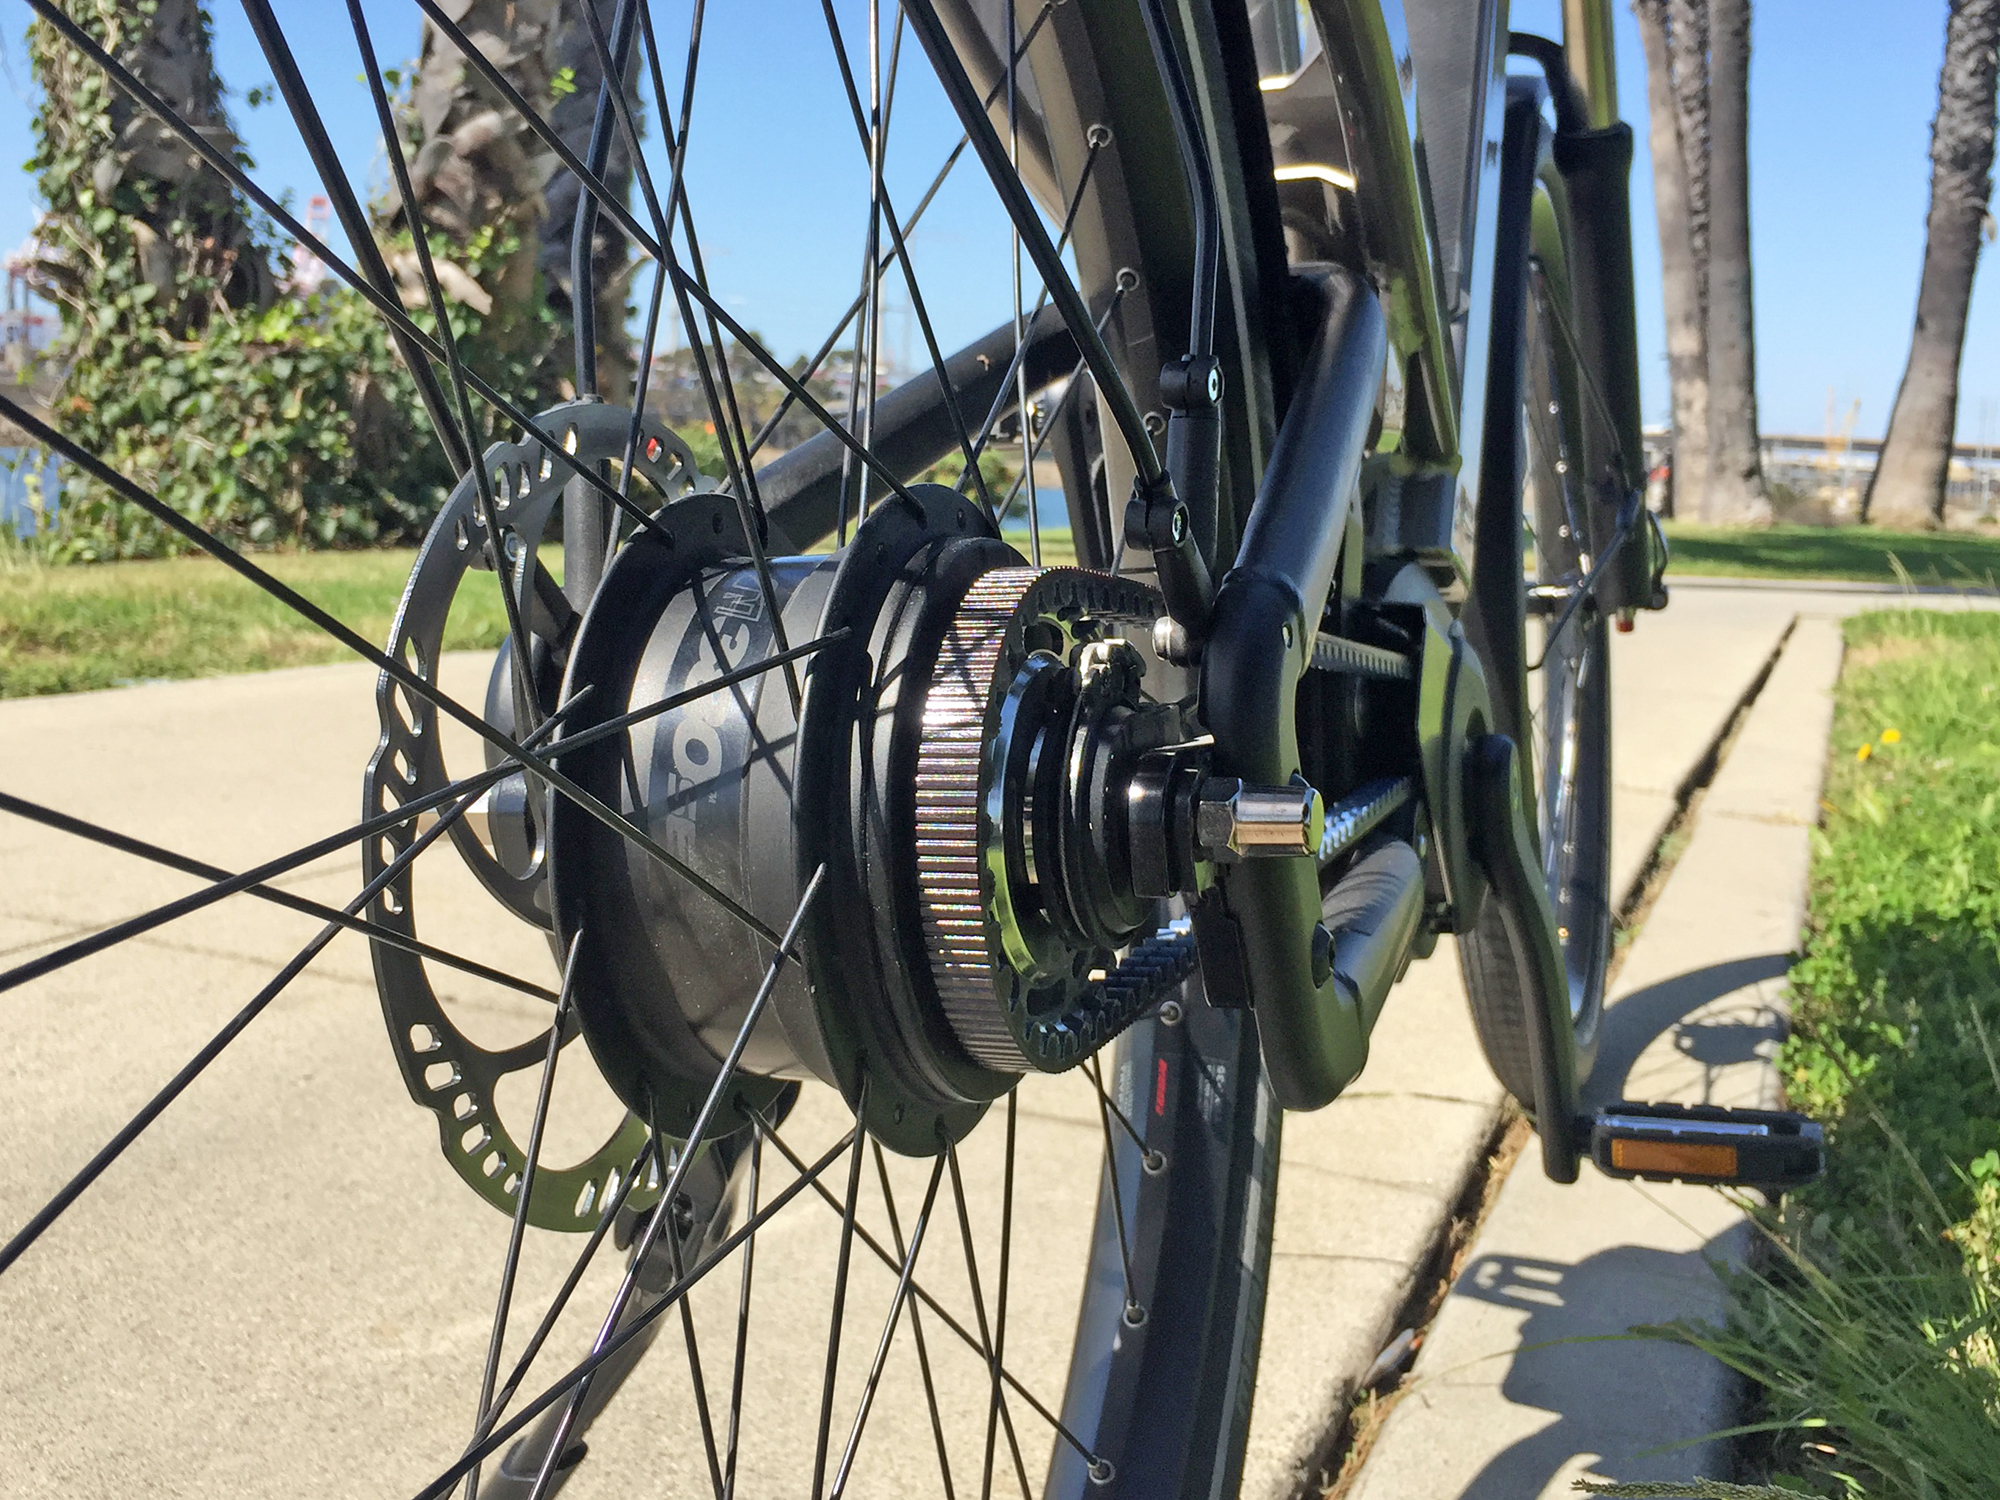 Enviolo NuVinci CVP Hub Overview | Electric Bike Forum - Q&A, Help